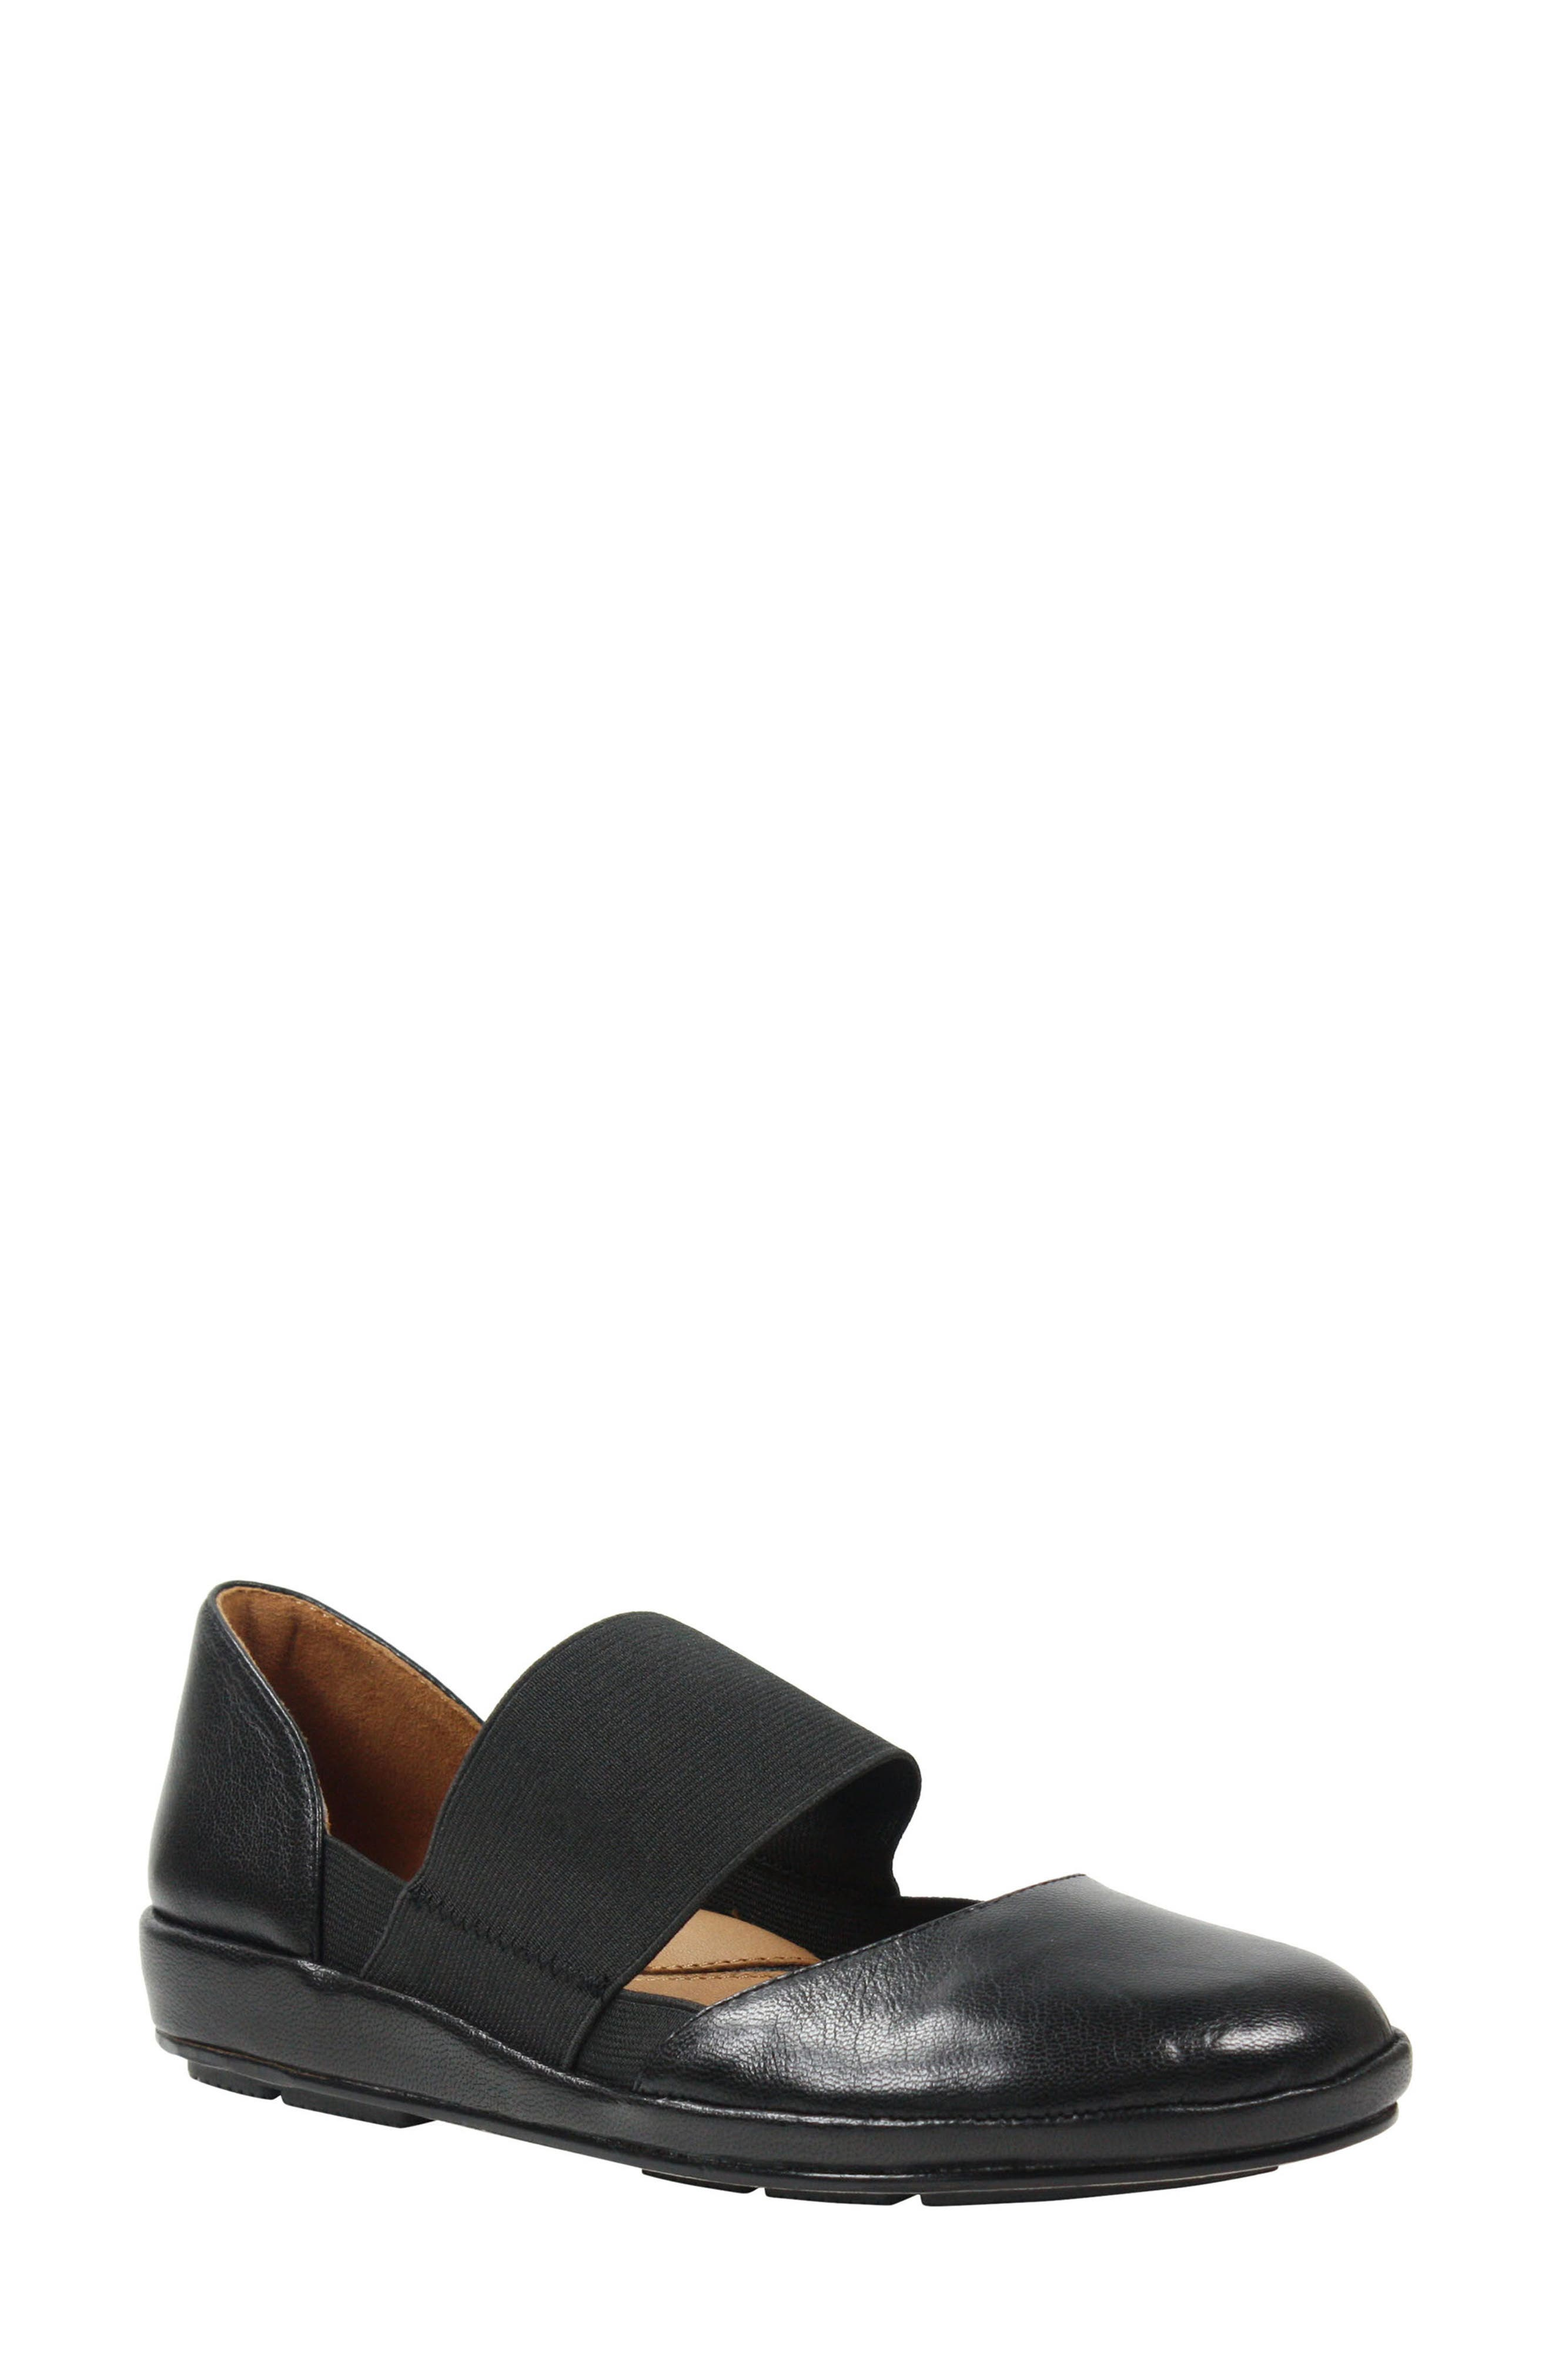 Camile Wedge Pump,                         Main,                         color, BLACK LEATHER